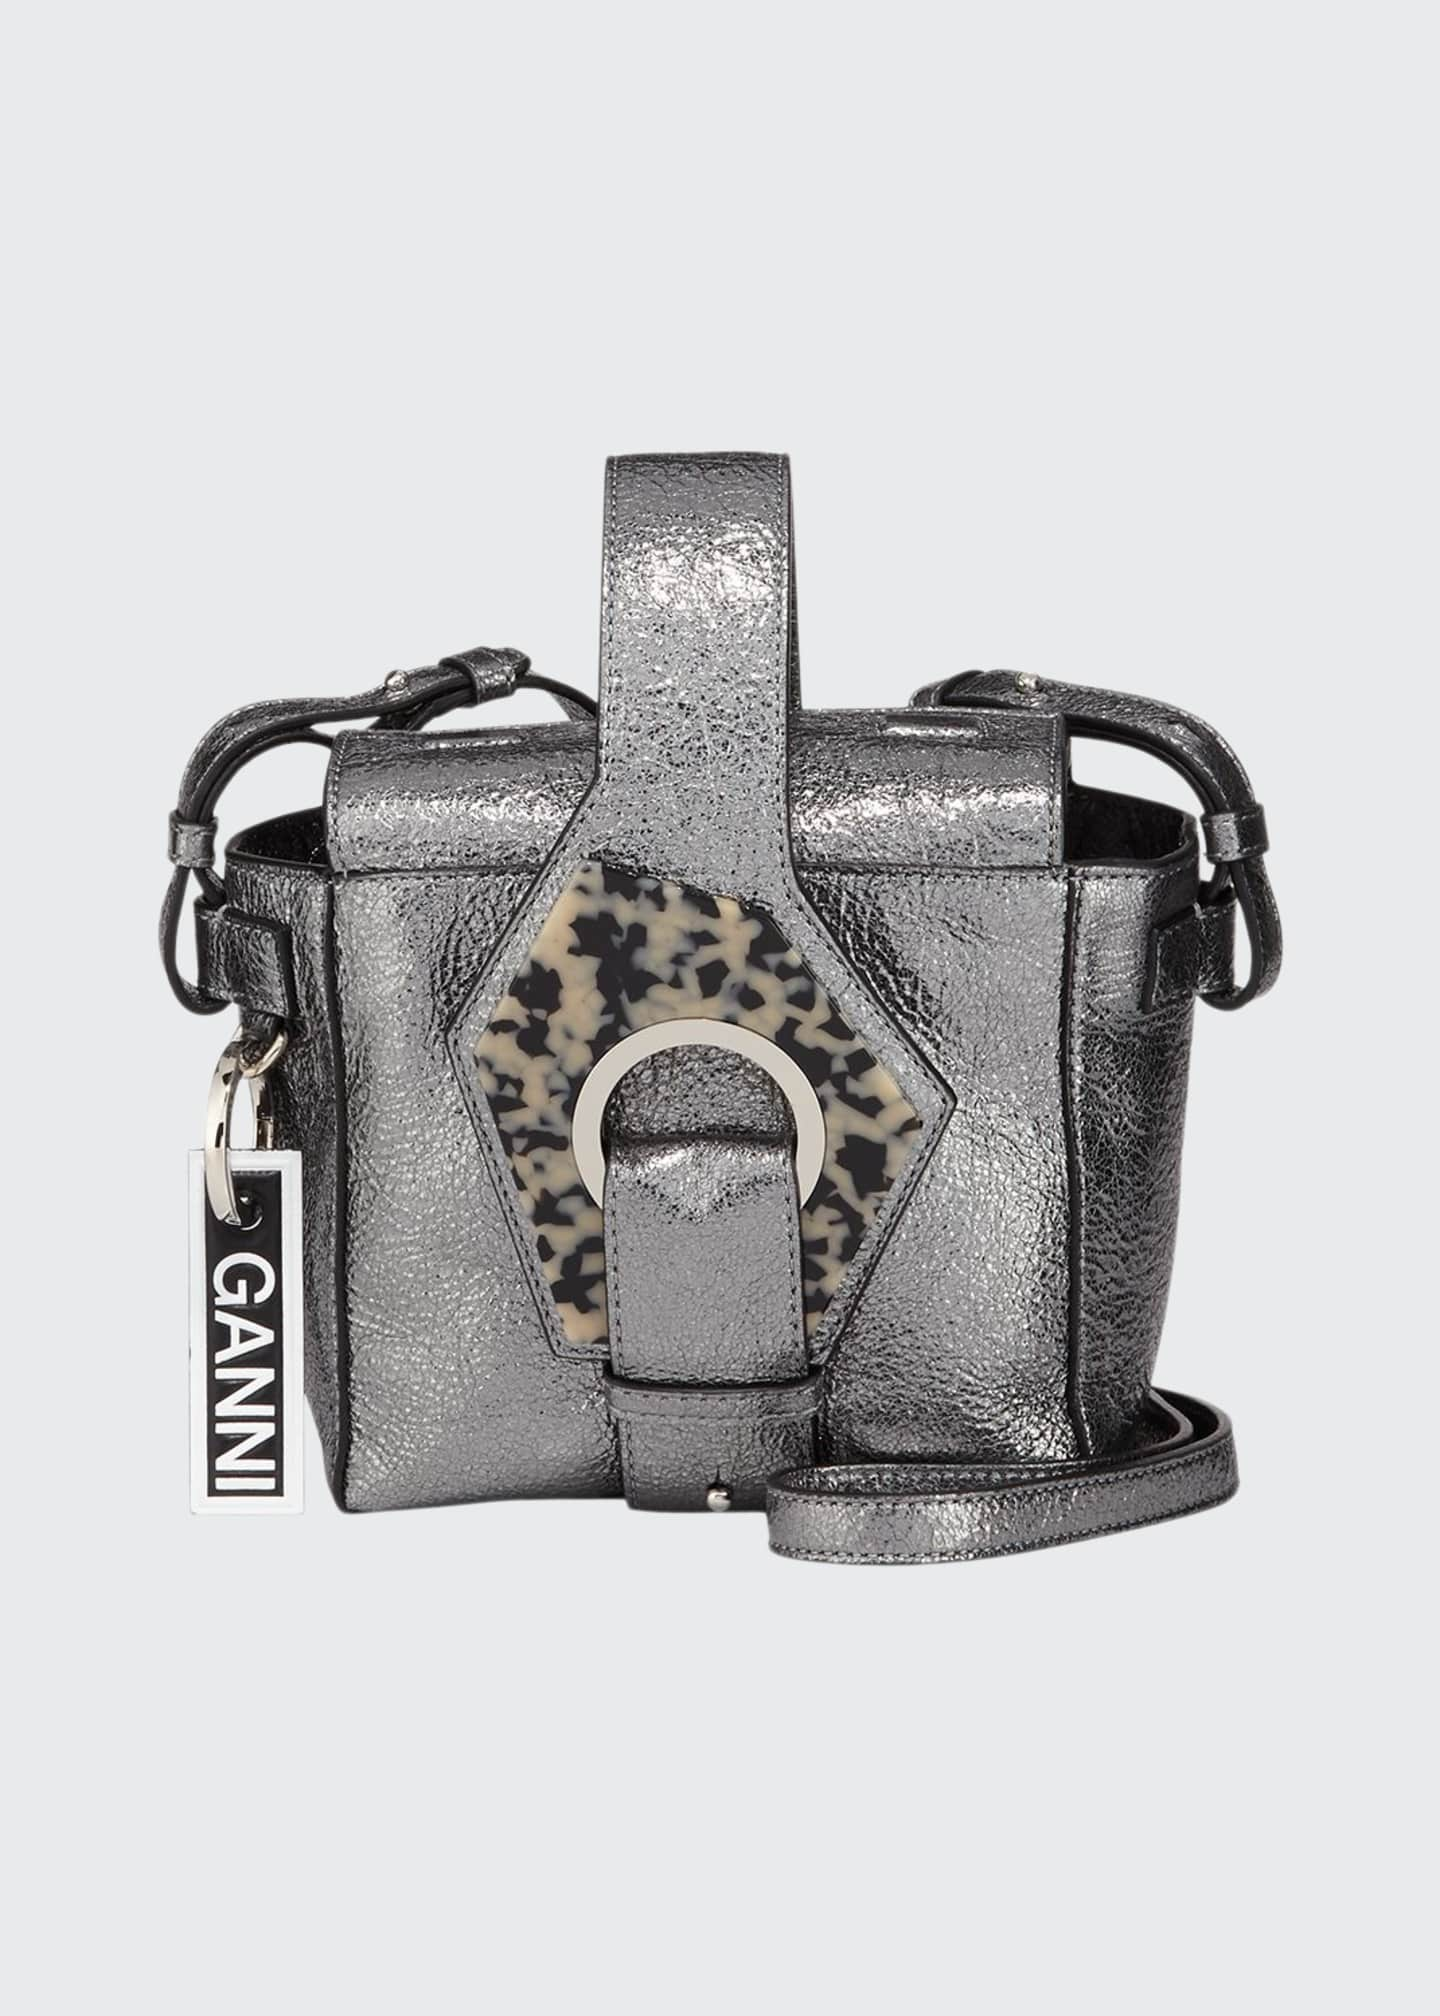 Ganni Metallic Square Bucket Bag